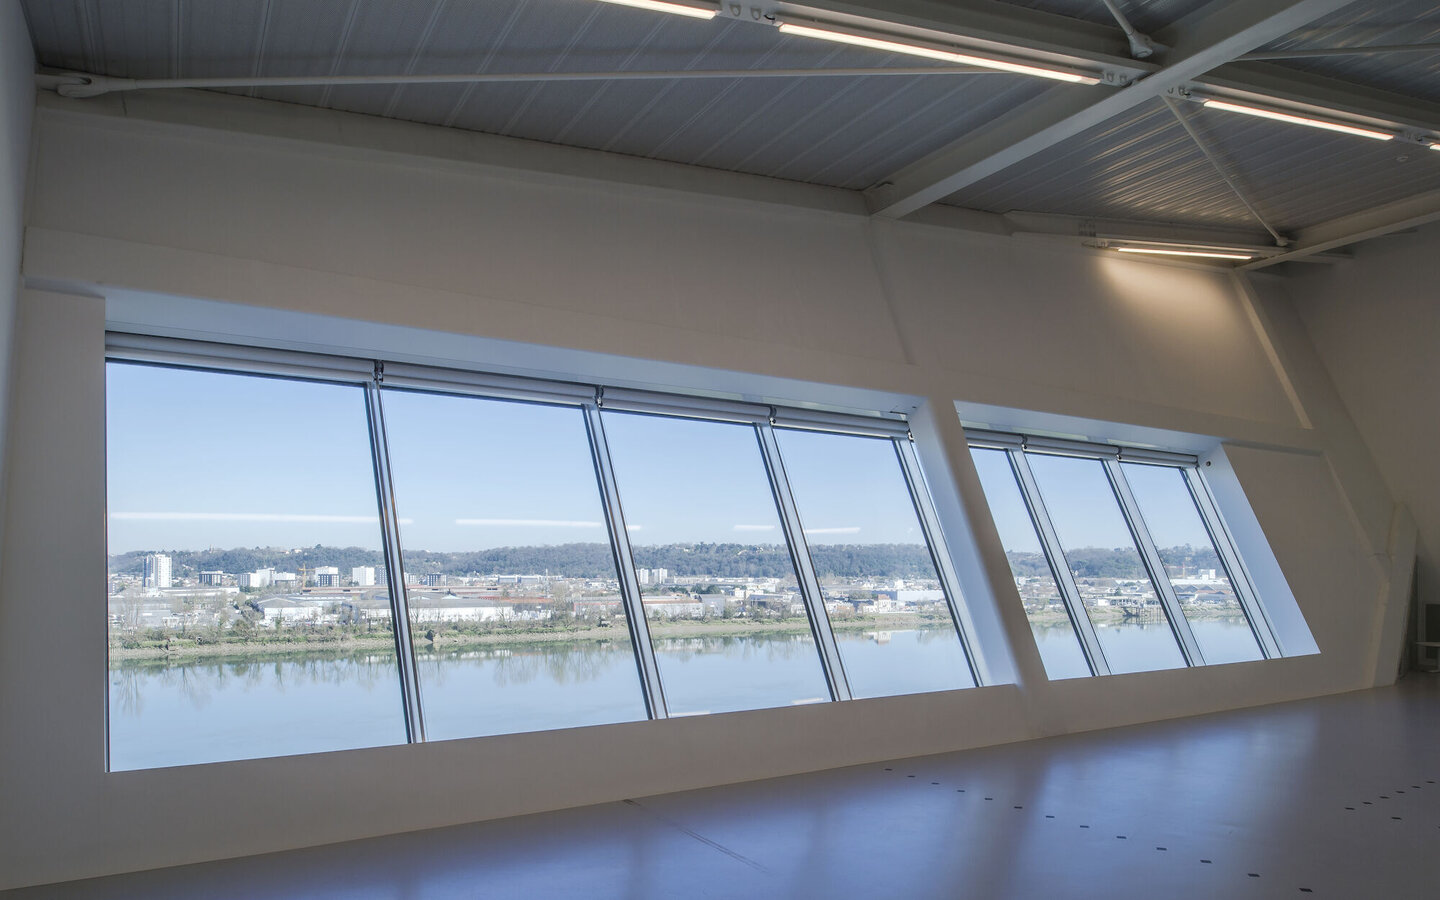 CW 86 Curtain Walls, CP 130 (-LS) Sliding Systems and CW 50 Curtain Walls - Entertainment LA MECA located in Bordeaux, France